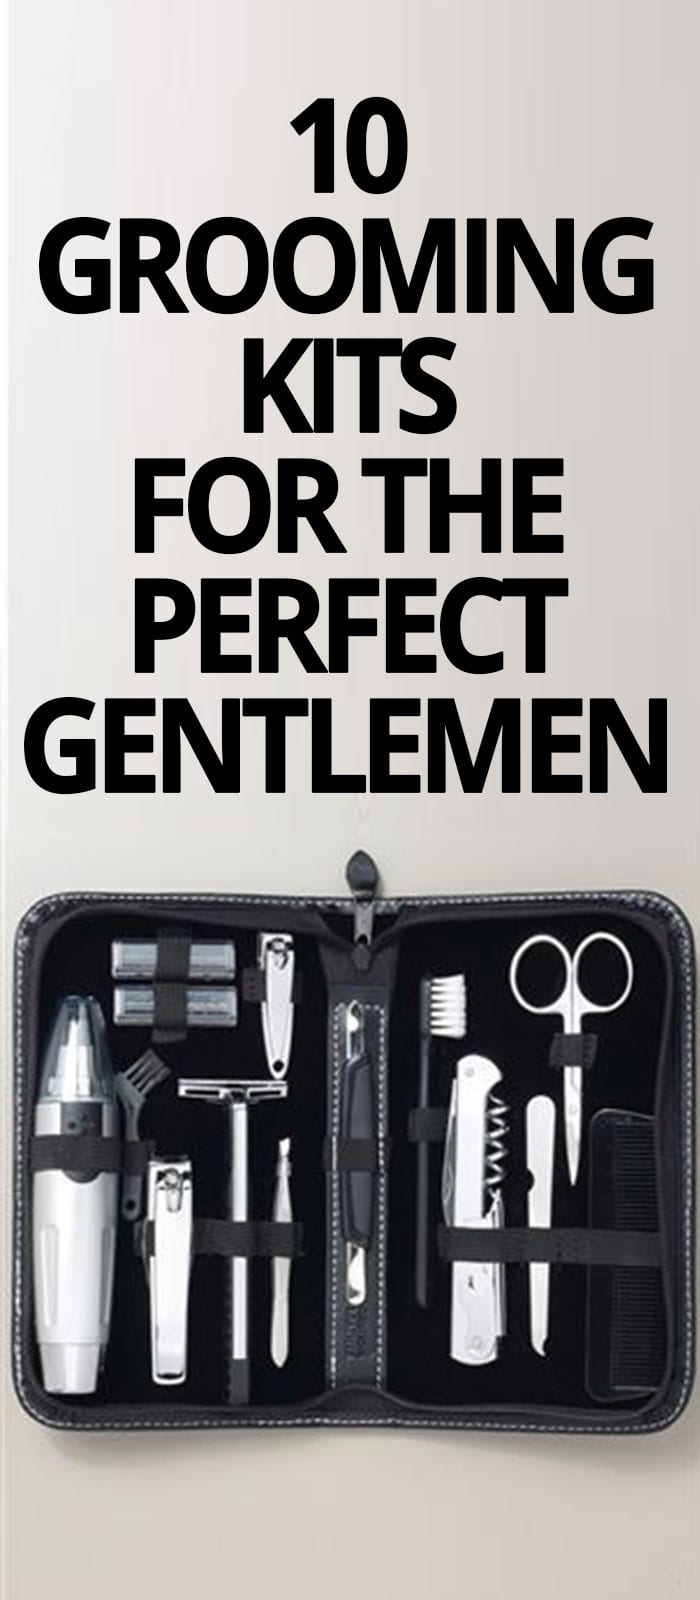 GROOMING-KITS-FOR-THE-PERFECT-GENTLEMEN